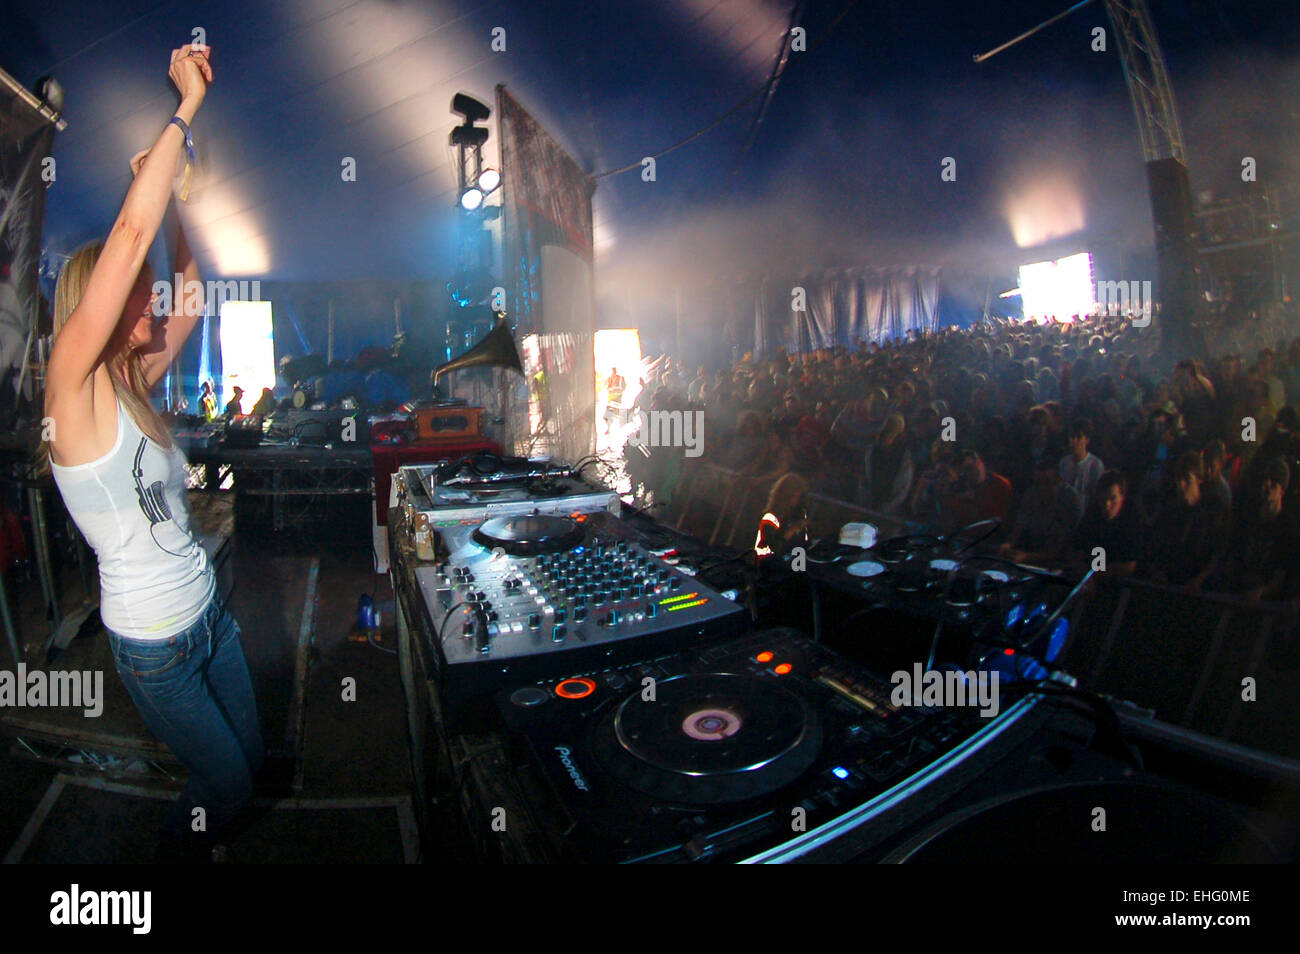 Mary Ann Hobbs DJing at The Glade Festival. - Stock Image